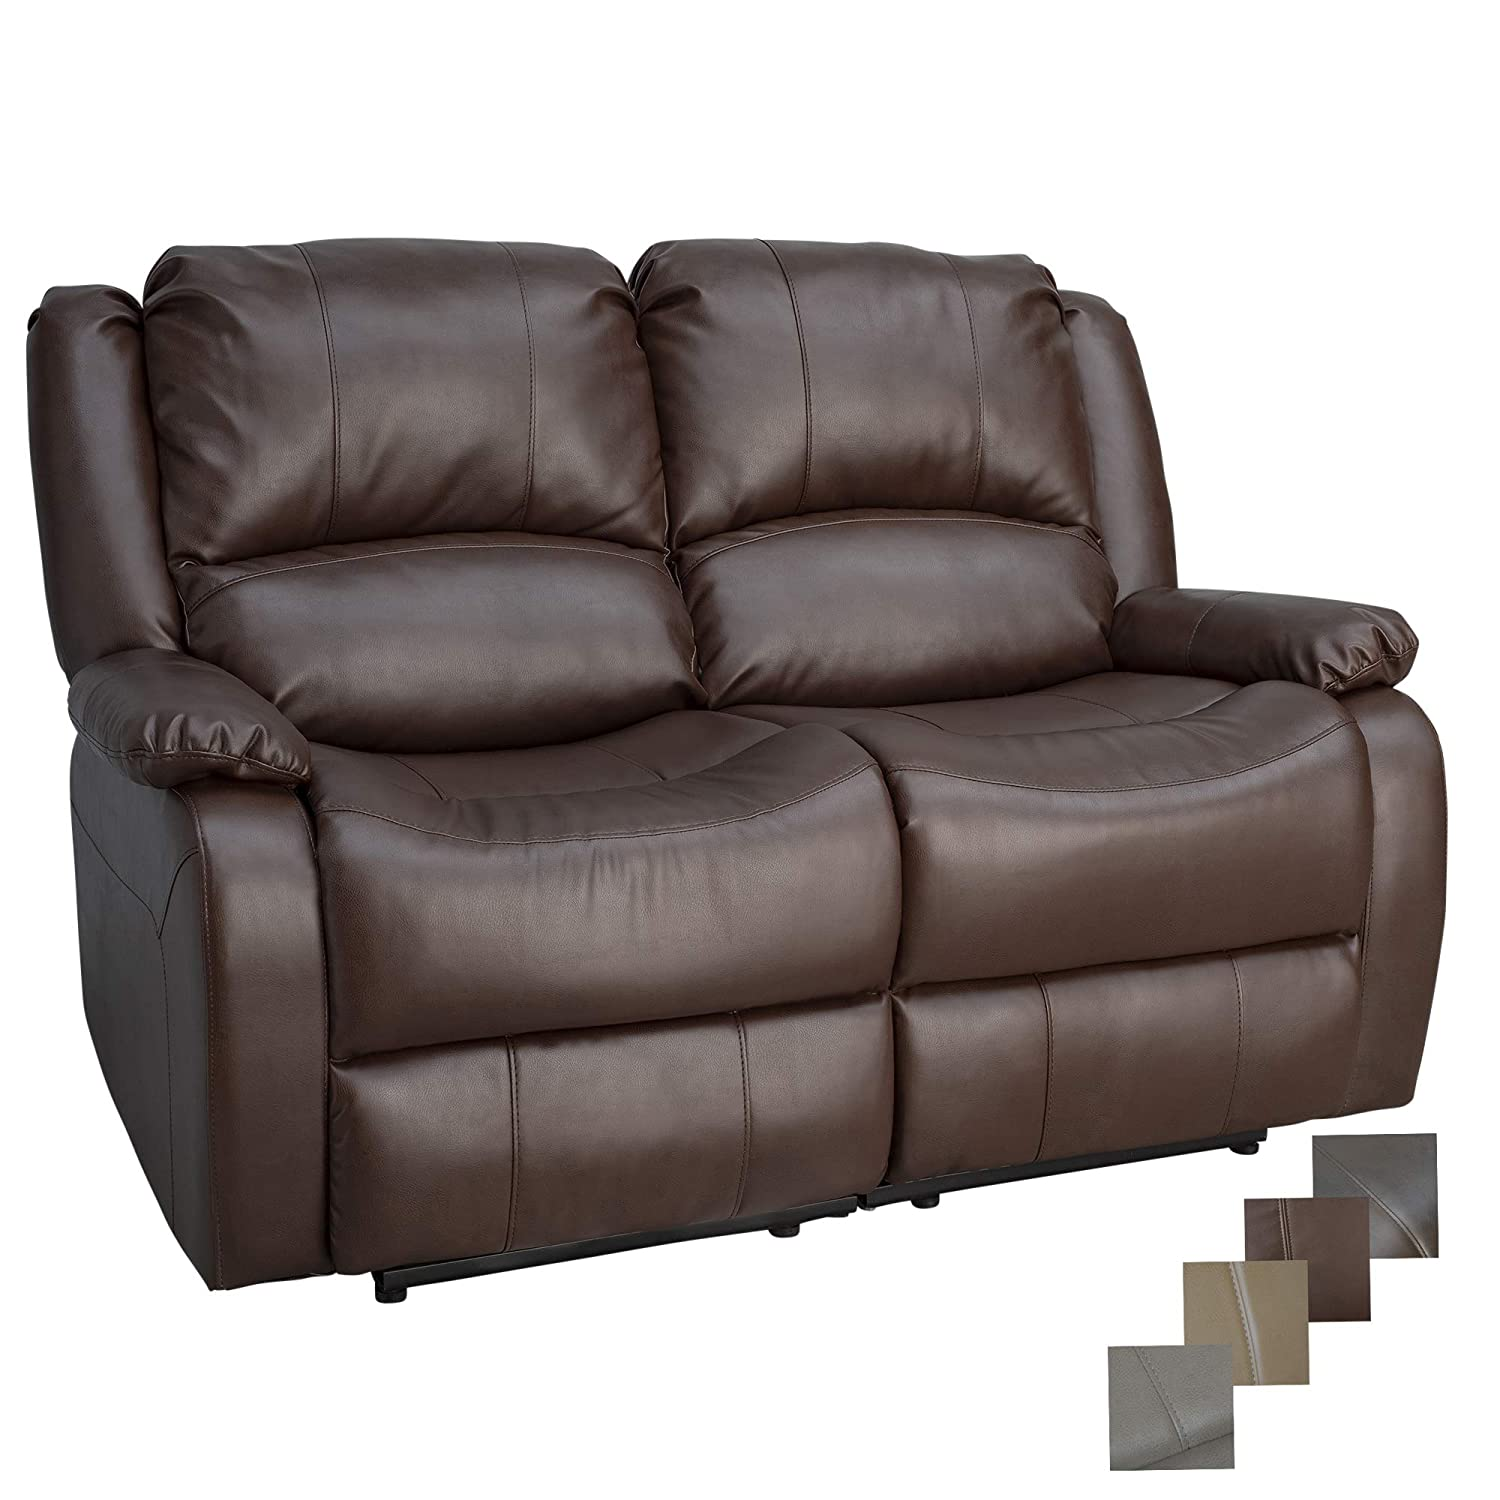 Amazon Com Recpro Charles Collection 58 Double Recliner Rv Sofa